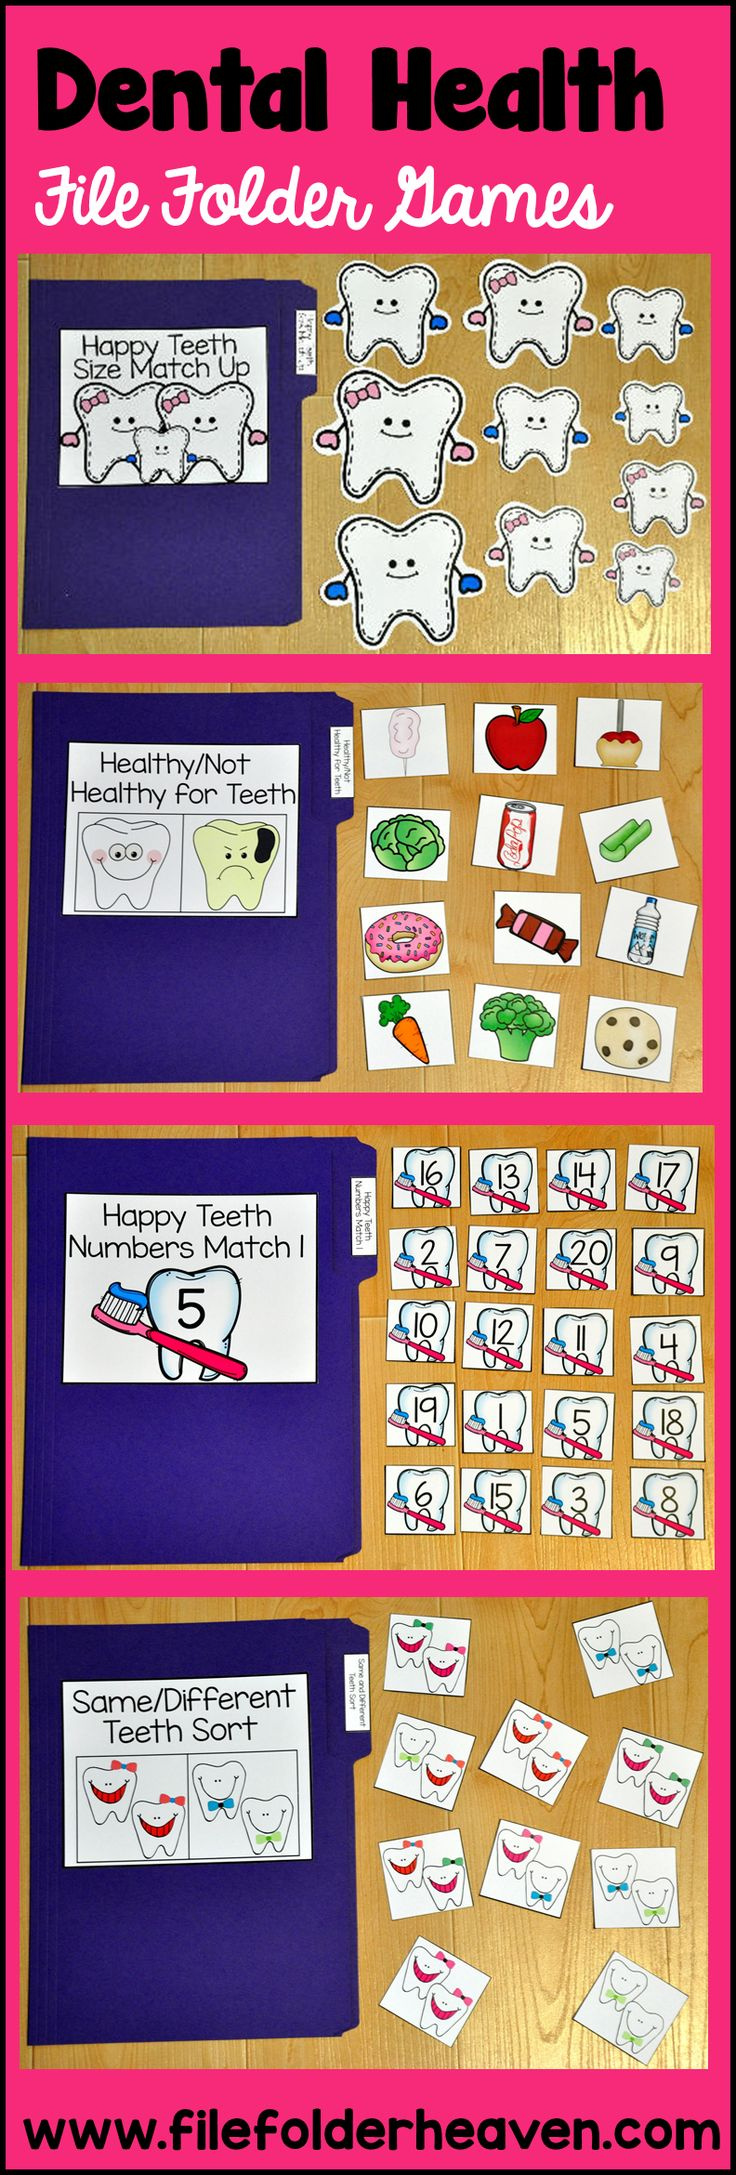 This Dental Health File Folder Games Mini-Bundle focuses on basic matching and sorting skills.  This set includes 9 unique file folder games with two bonus games for differentiation (for a total of 11 games!) These activities  focus on basic skills, such as matching picture to picture, matching shapes, matching numbers, matching letters, matching by size, sorting by size, sorting by color, sorting by likeness and differences, and identifying healthy and unhealthy foods for our teeth.